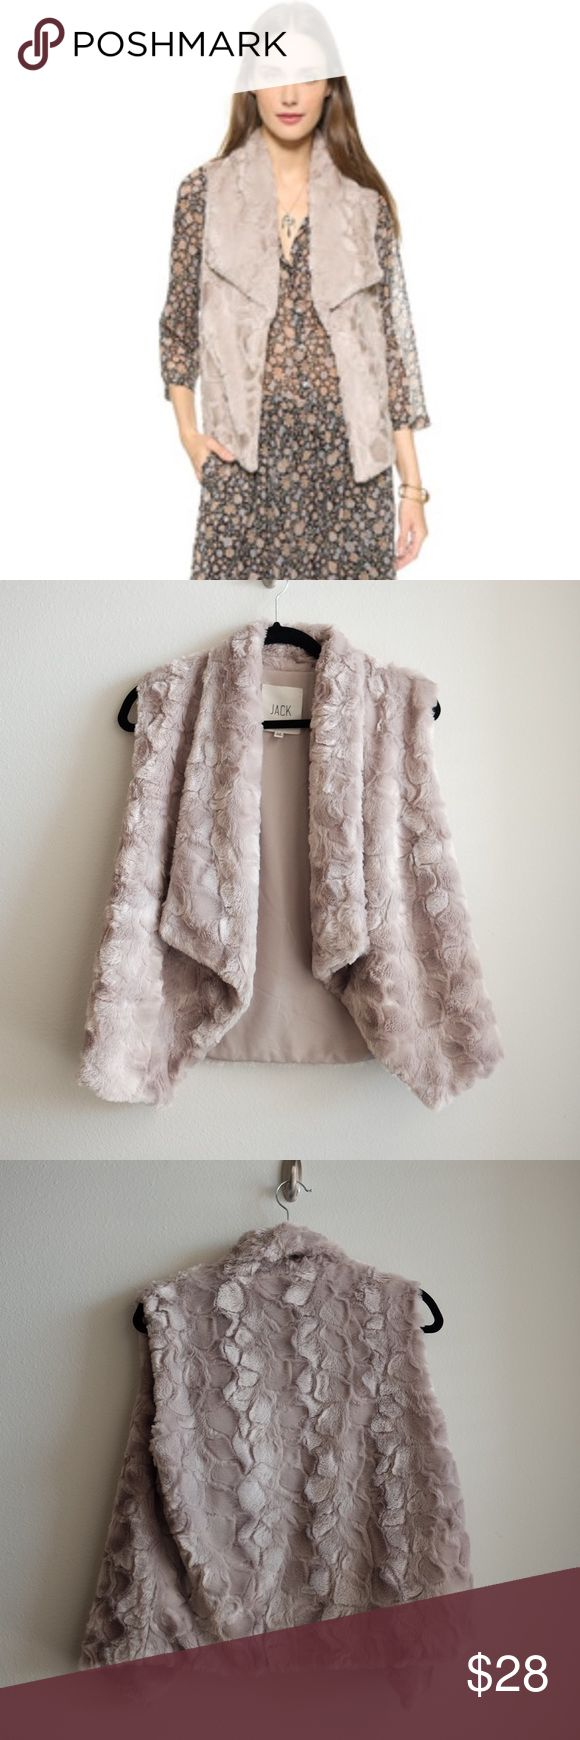 "Jack by BB Dakota Electra Faux Fur Vest Jack by BB Dakota Electra Faux Fur Vest Size M Length: 23"". Super soft and comfortable. Not real fur! 100% polyester. Comes from a pet free and smoke free home. Happy poshing! Jack by BB Dakota Jackets & Coats Vests"